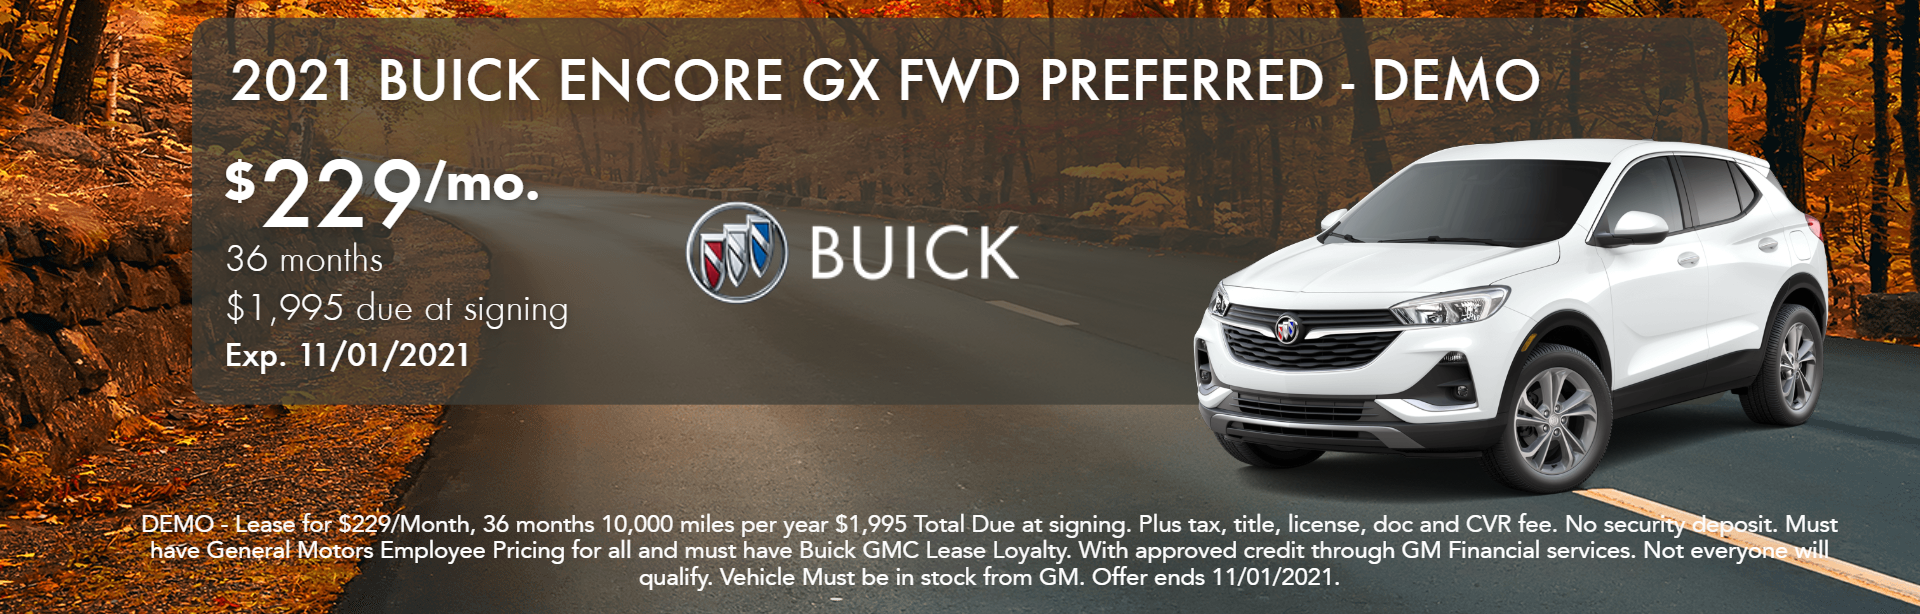 2021_Buick_Encore GX_Preferred_Mon Oct 04 2021 09_40_38 GMT-0400 (Eastern Daylight Time)